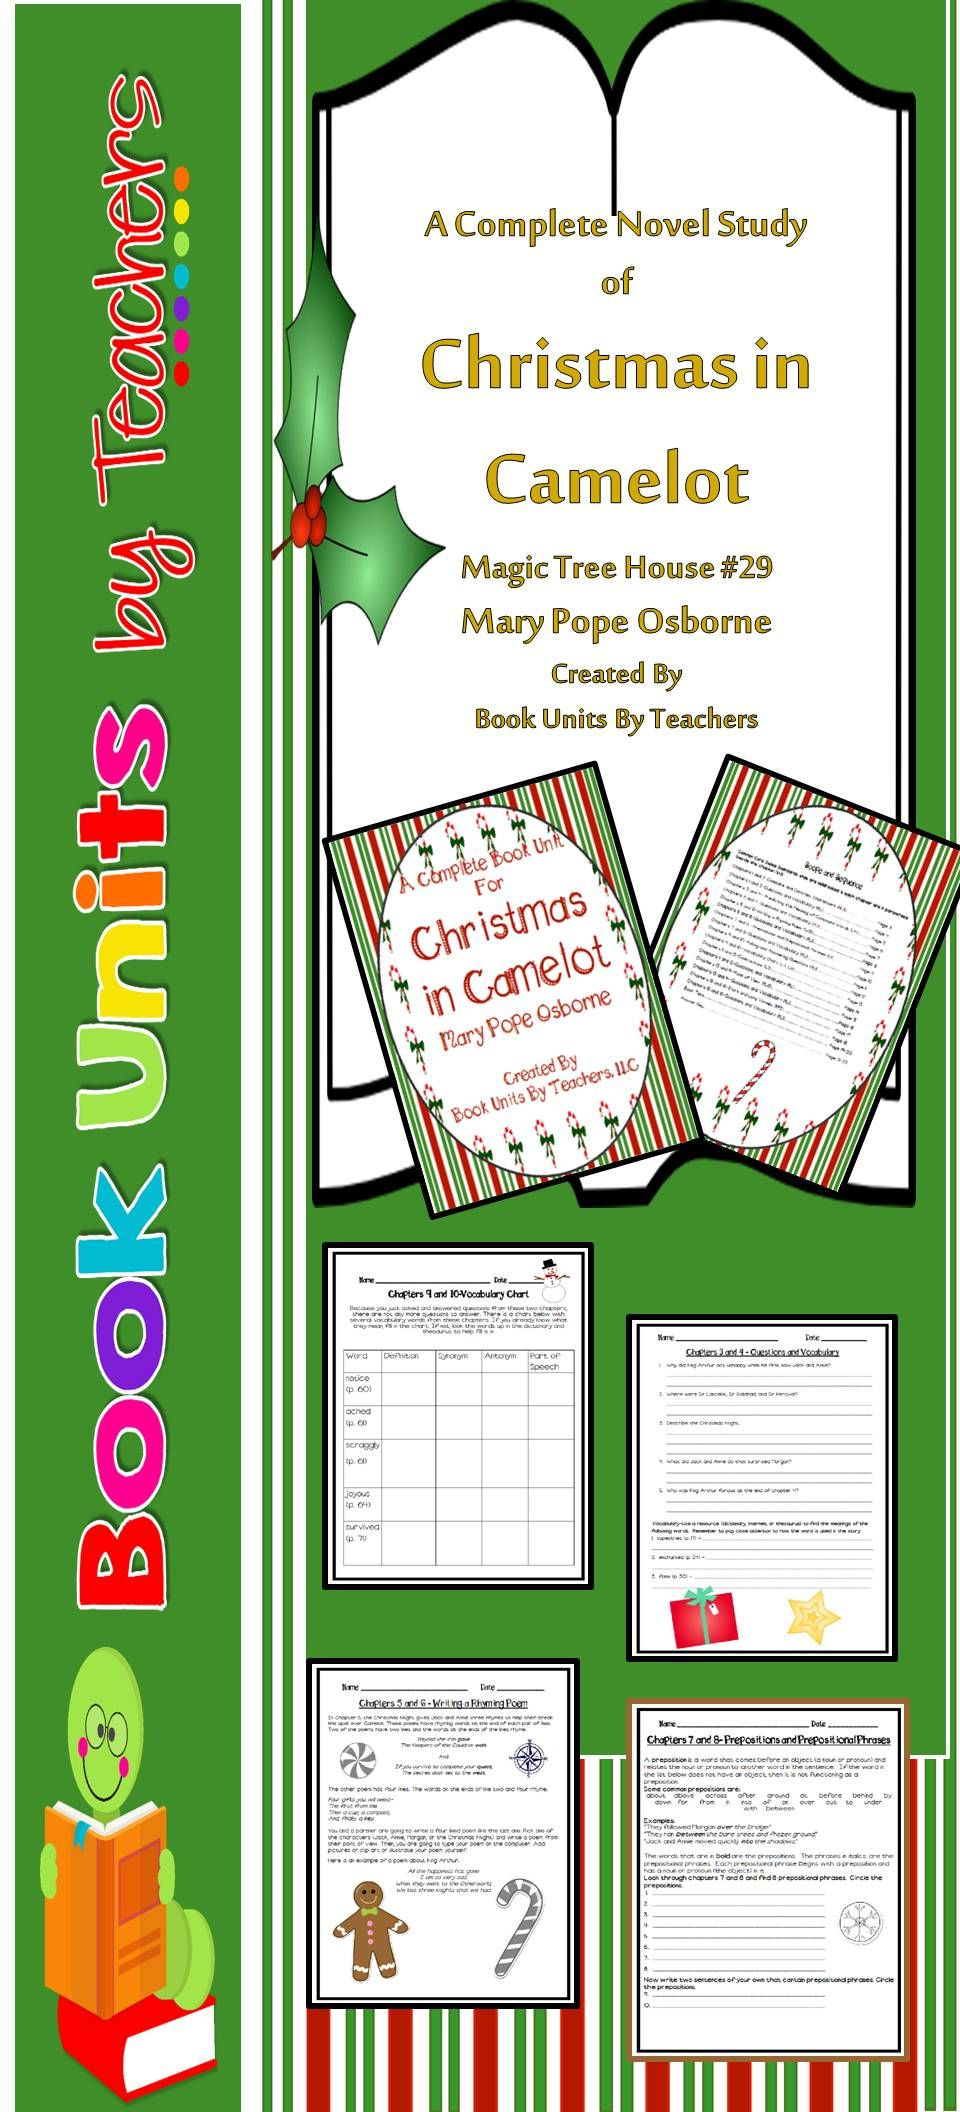 Magic Tree House Christmas In Camelot Book Unit-Includes